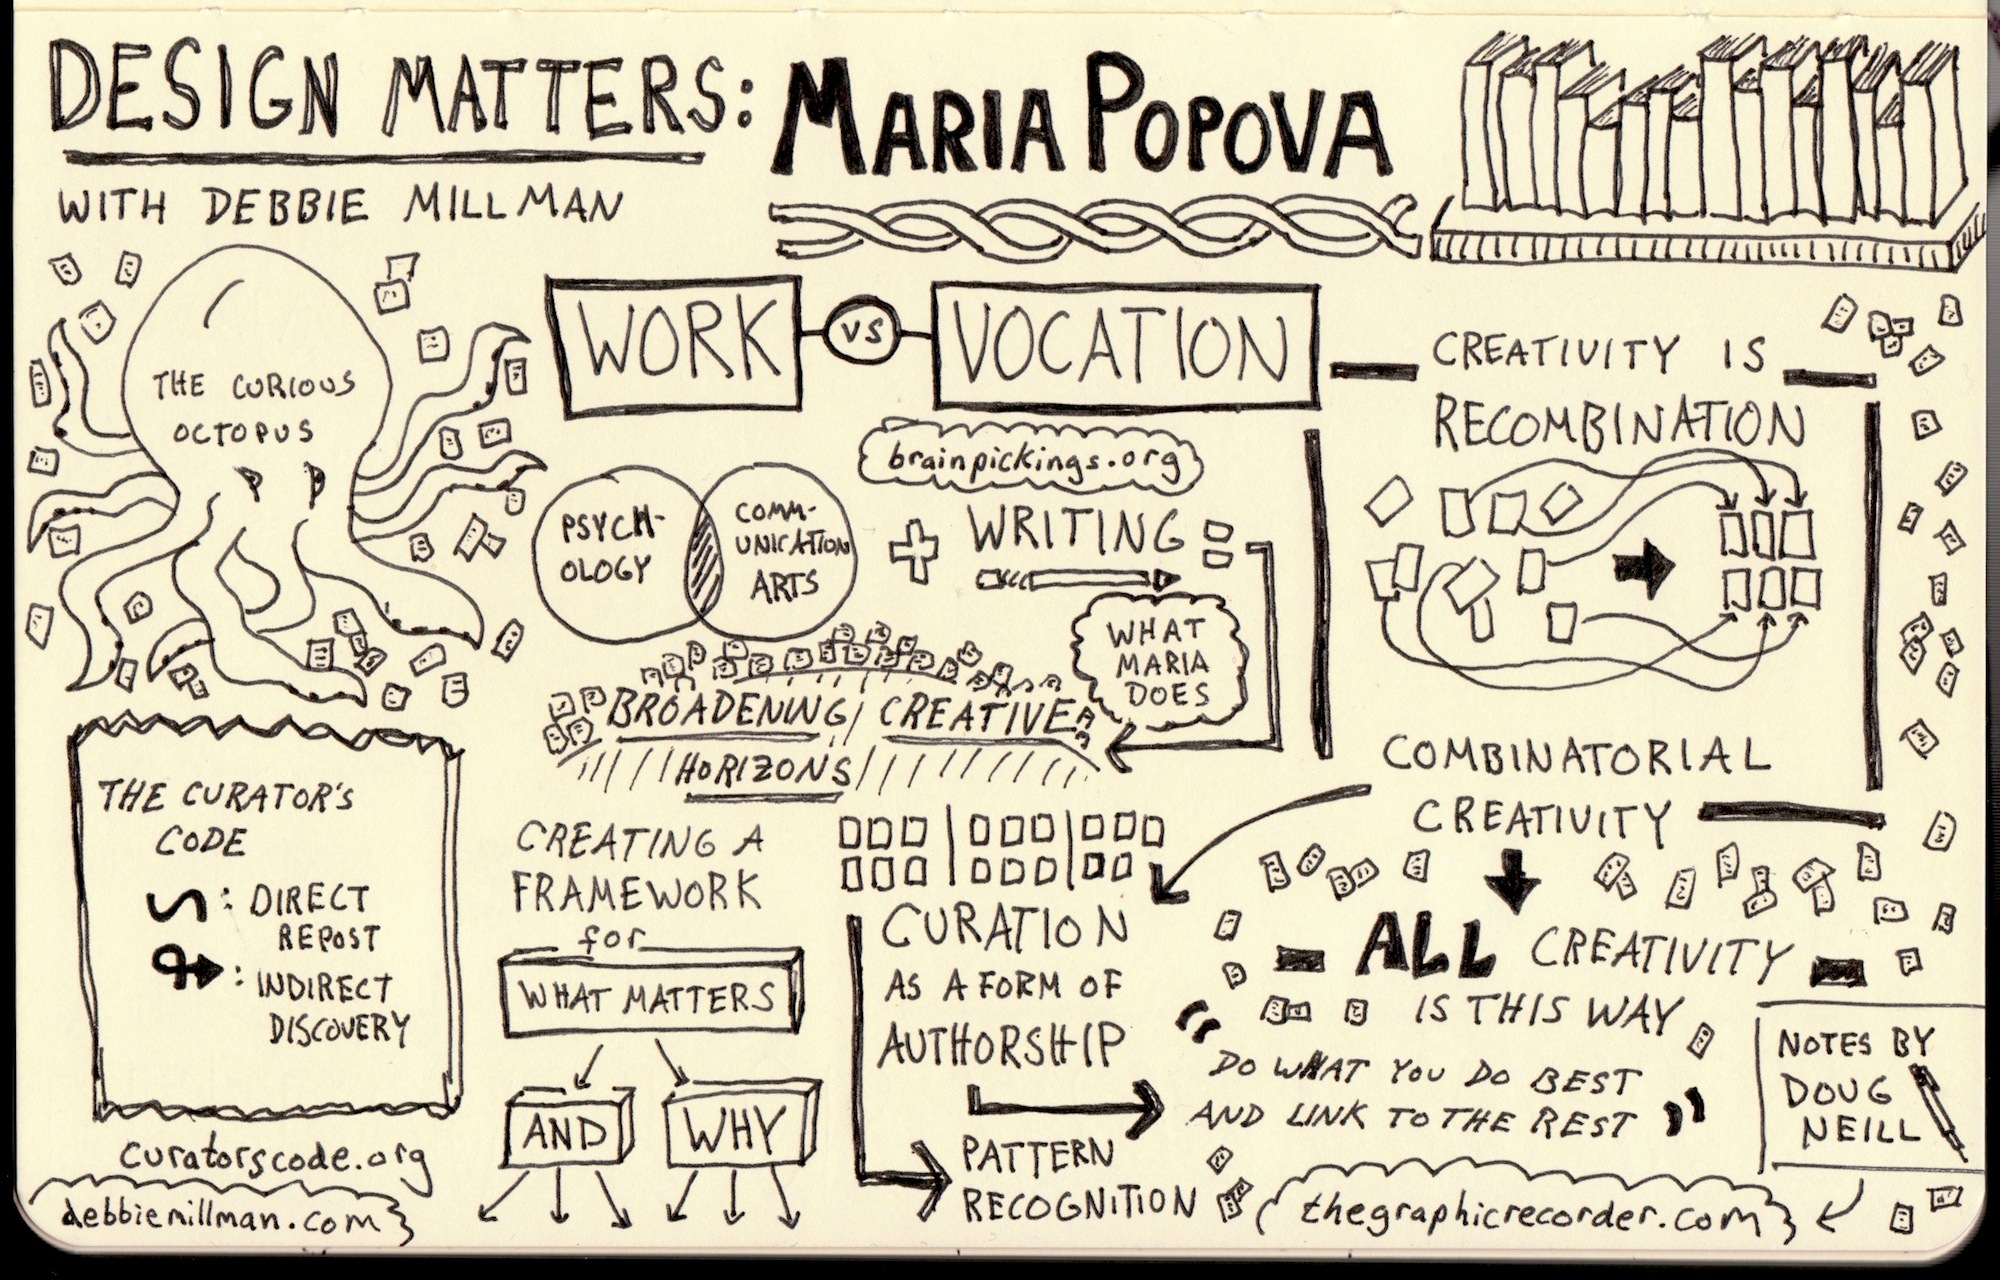 Sketchnotes of Brain Pickings' Maria Popova on Design Matters with Debbie Millman